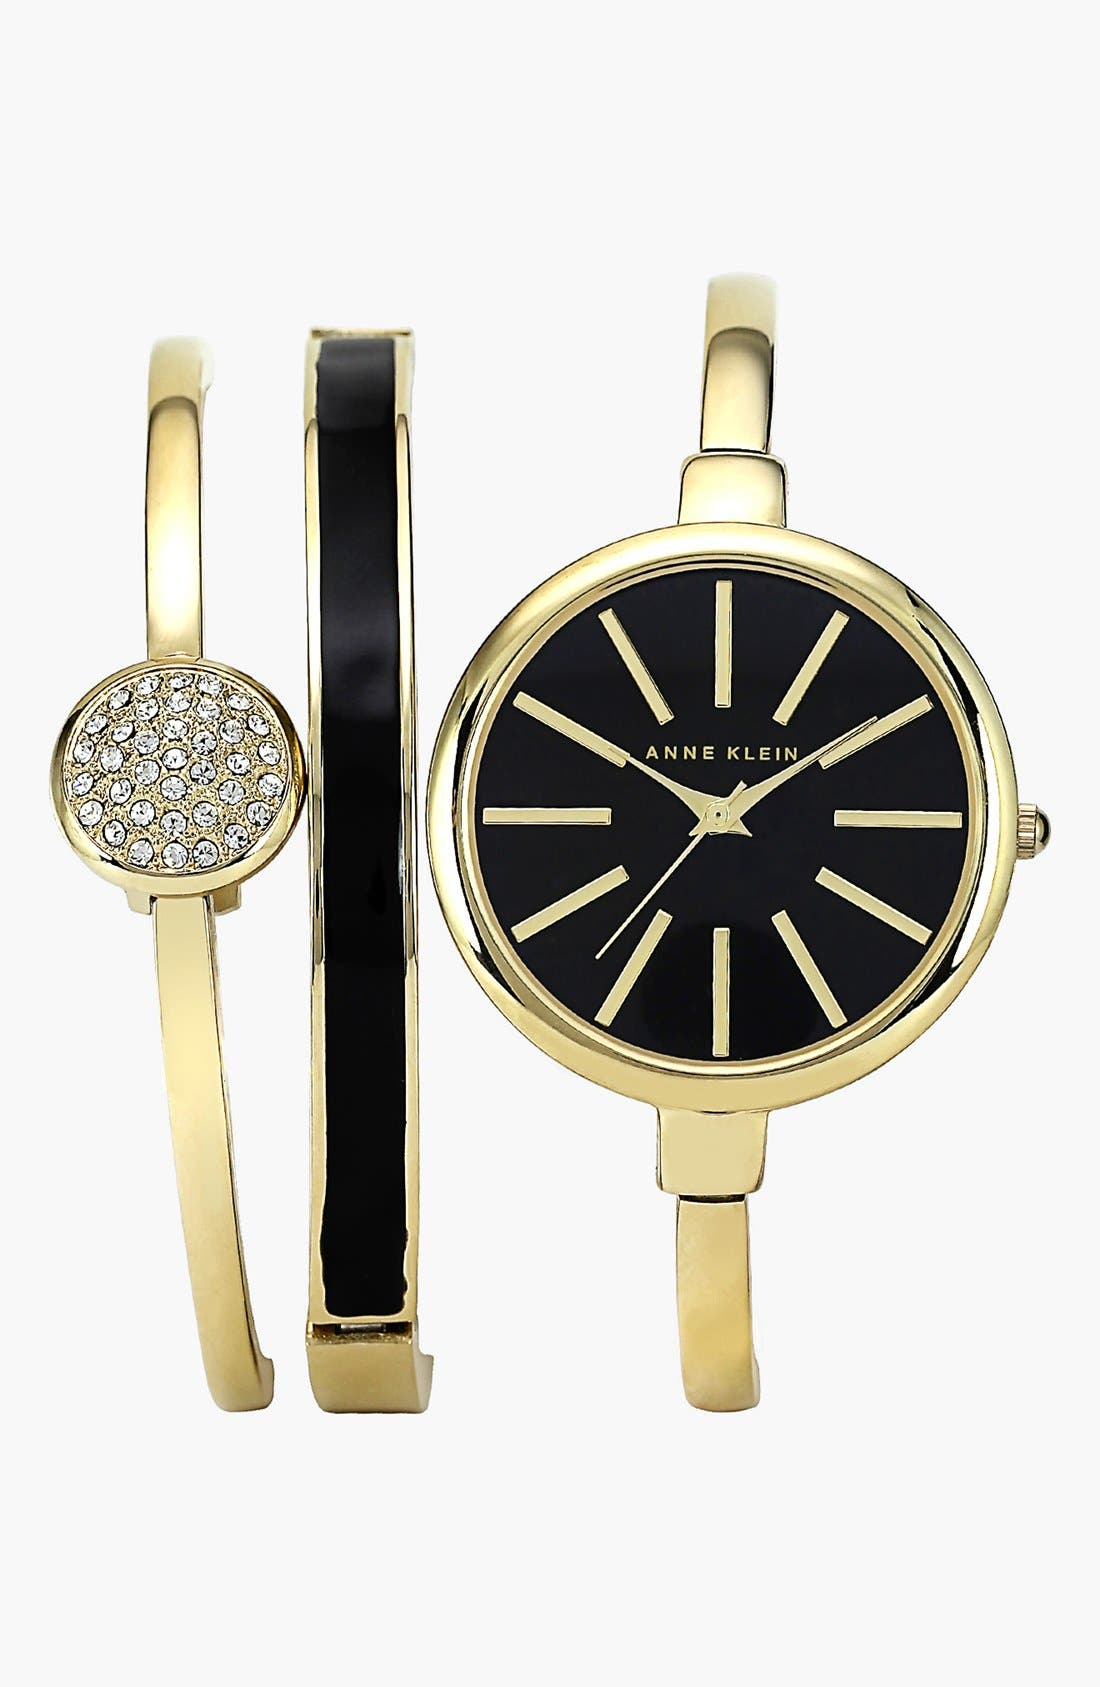 Main Image - Anne Klein Boxed Bracelet & Bangle Watch Set, 32mm ($165 Value)